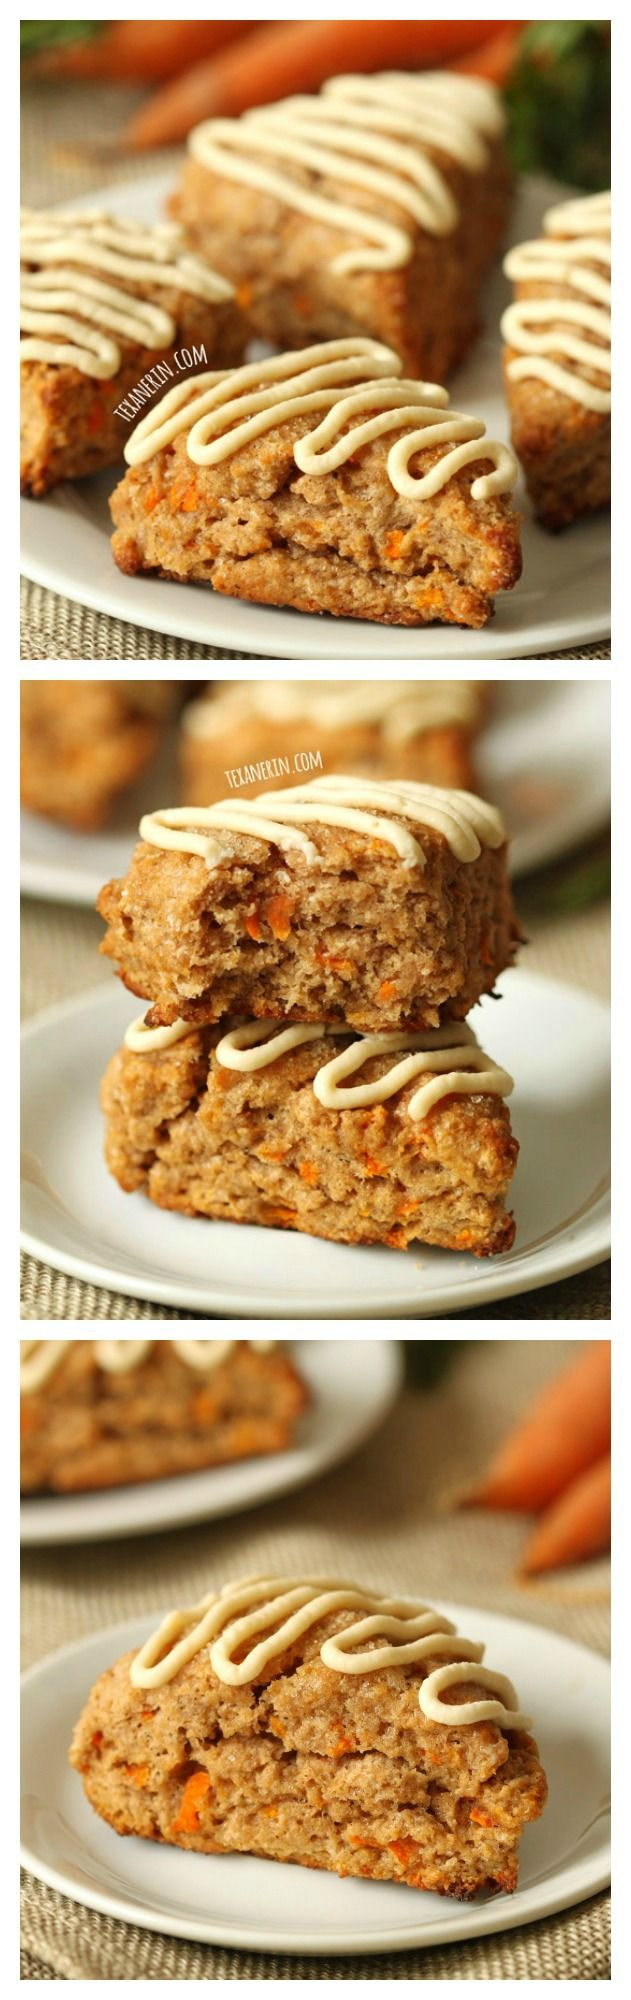 These carrot cake scones are made a little healthier with whole grains, less sugar and maple sweetened cream cheese frosting!